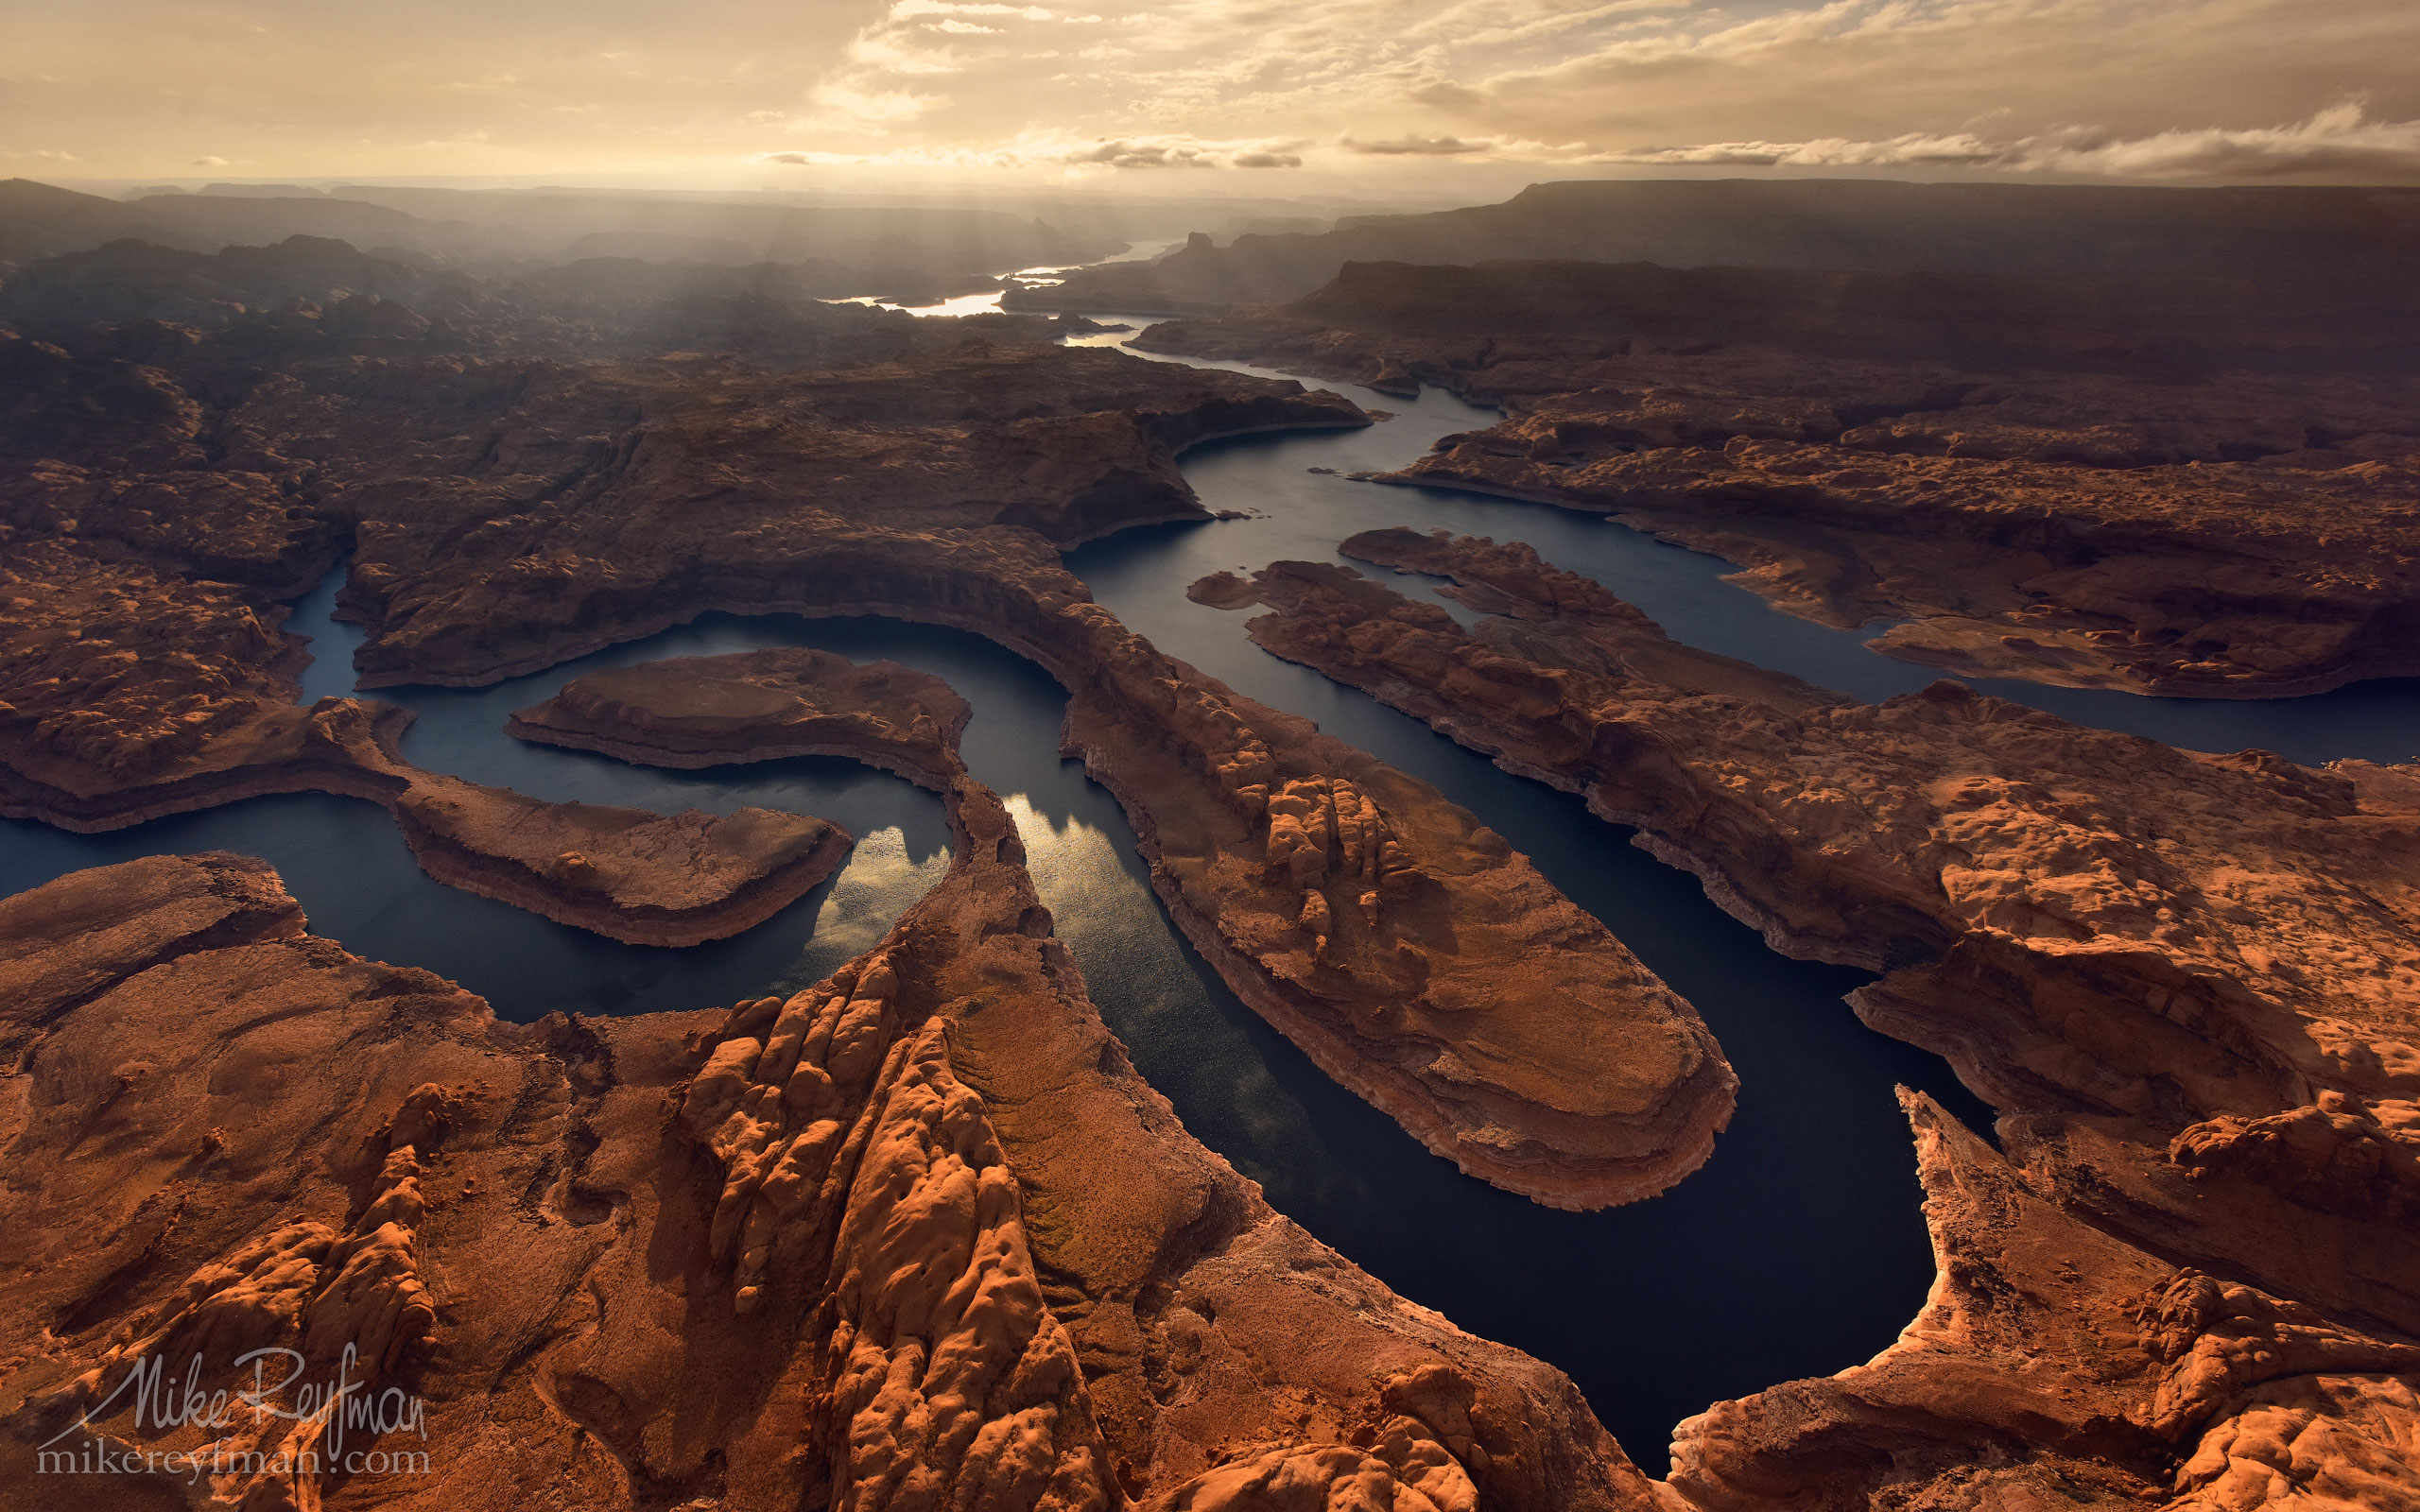 Sunset on Planet Earth. Confluence of San Juan & Colorado Rivers. Glen Canyon NRA, Lake Powell, Utah/Arizona, USA. Aerial. 003-LP3_D1C1628-9.jpg - Lake Powell, Glen Canyon NAR. Colorado and Sun Juan Rivers. Utah/Arizona, USA  - Mike Reyfman Photography